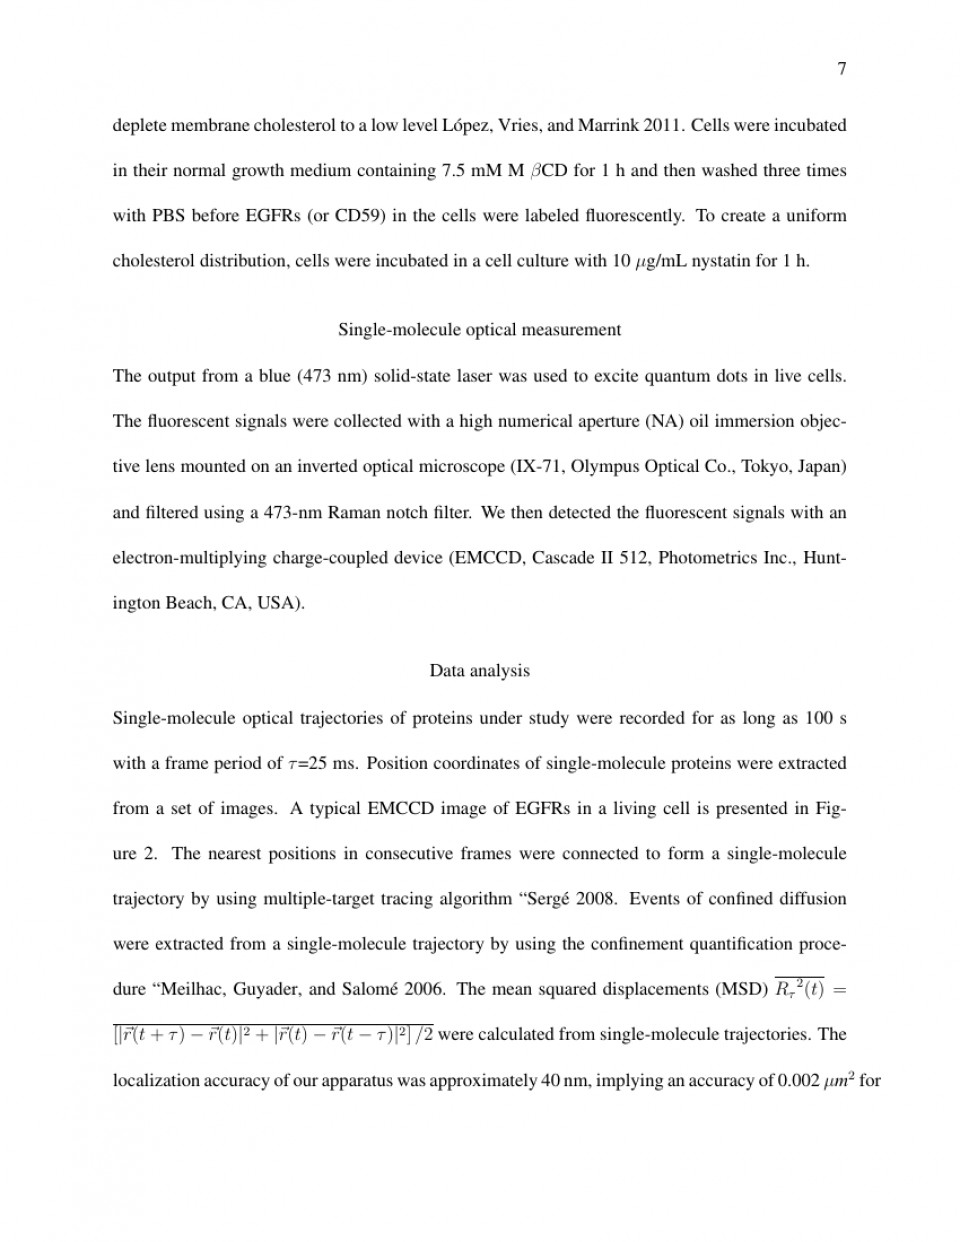 003 Research Paper Article Format Of Awesome Papers Example Qualitative Pdf Apa Style 960